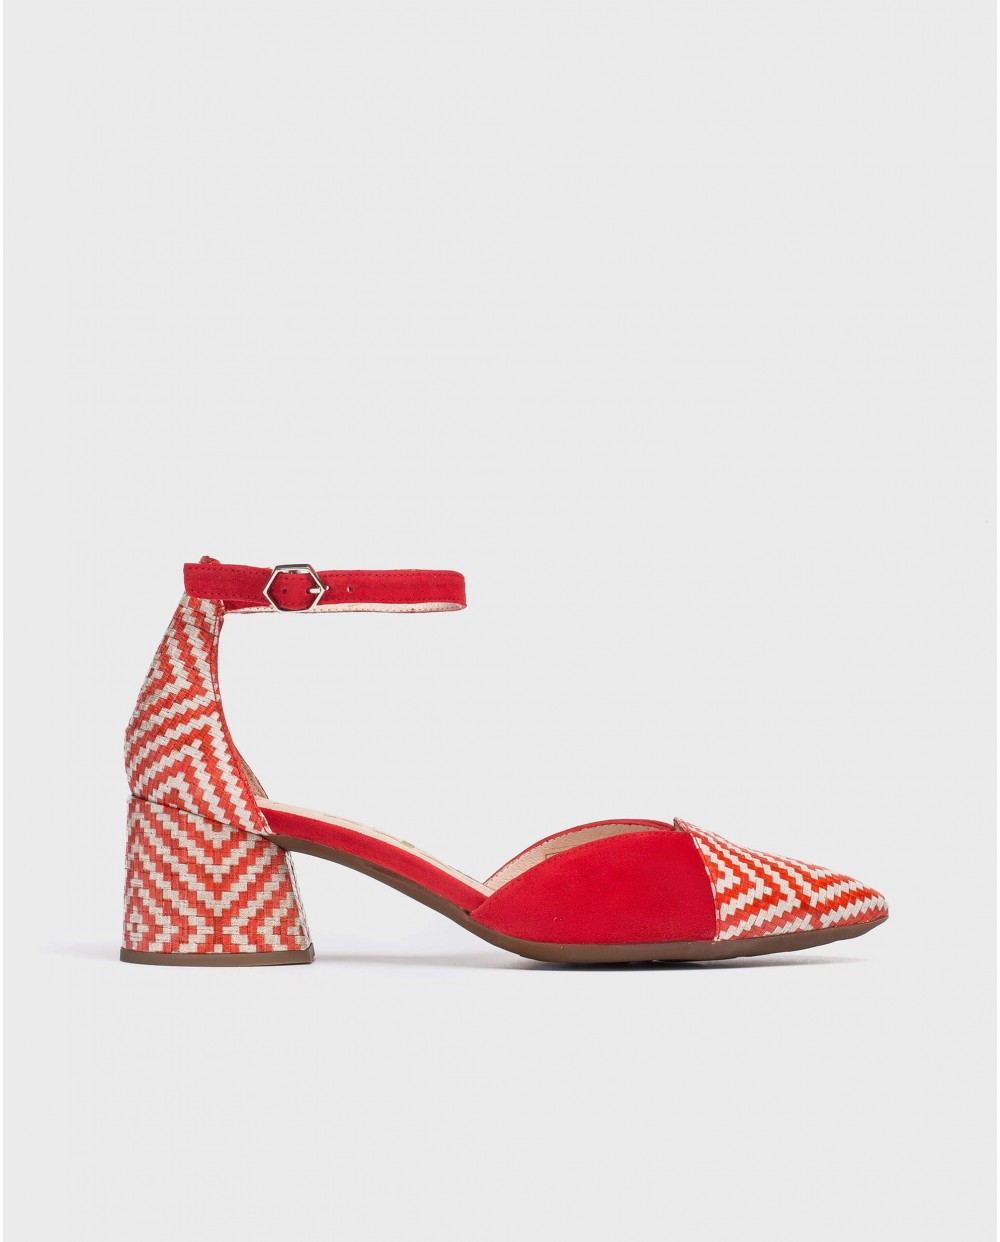 Wonders-Heels-High heeled shoe with ankle strap